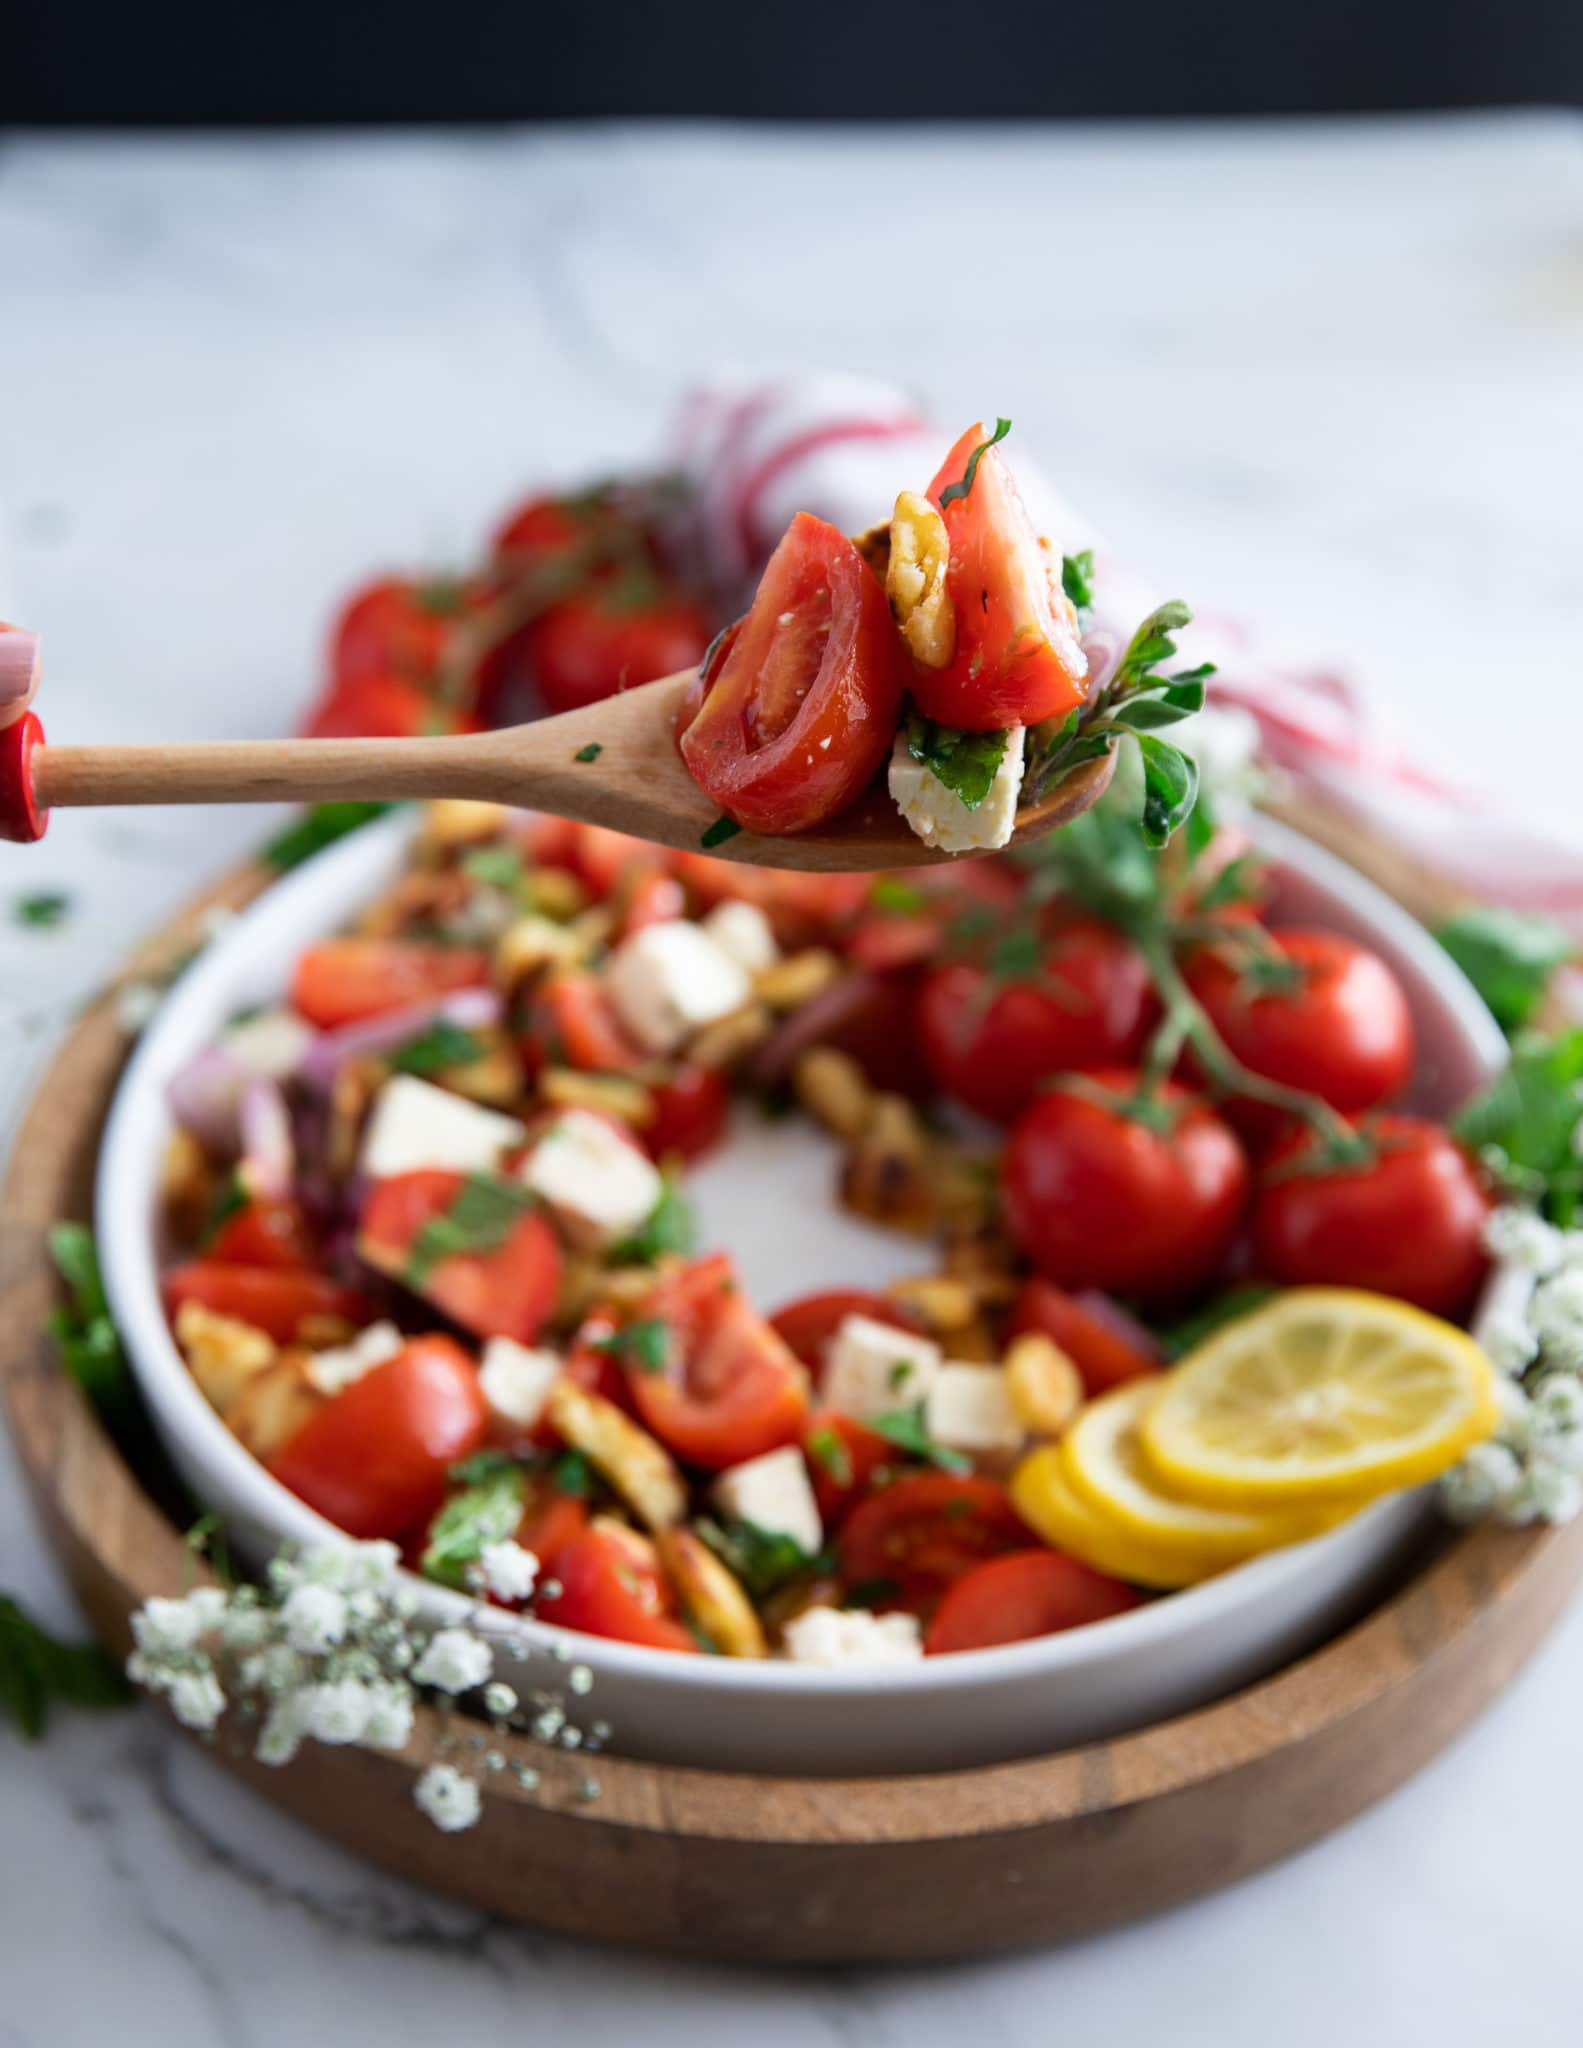 A salad serving spoon serving up some tomato salad showing how juicy the tomatoes are